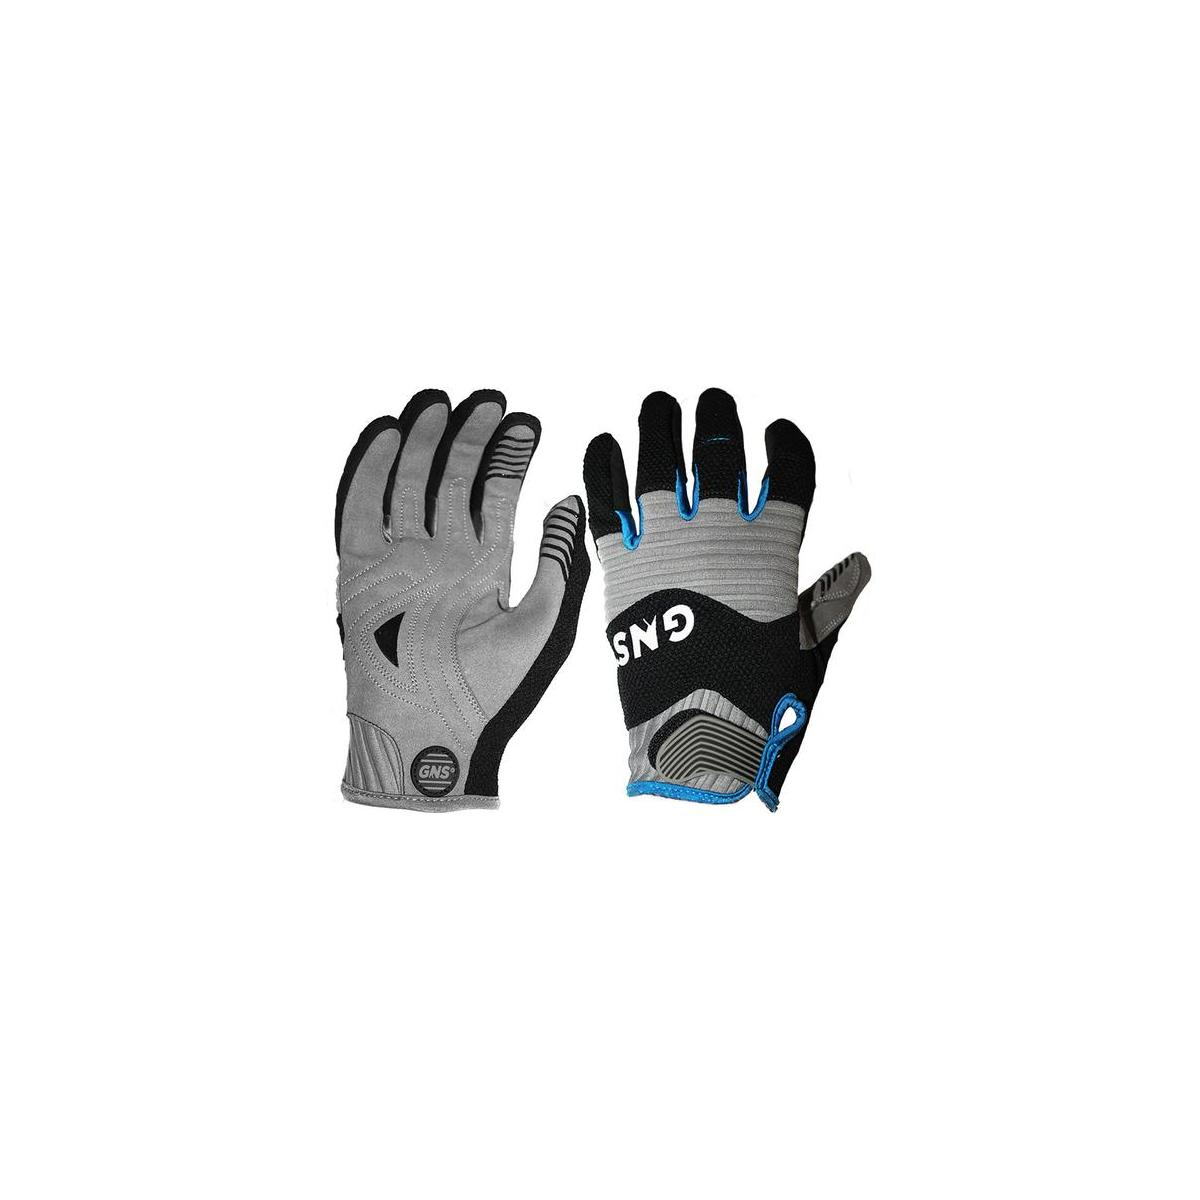 GNS Bike Gloves - Swerve and Protect